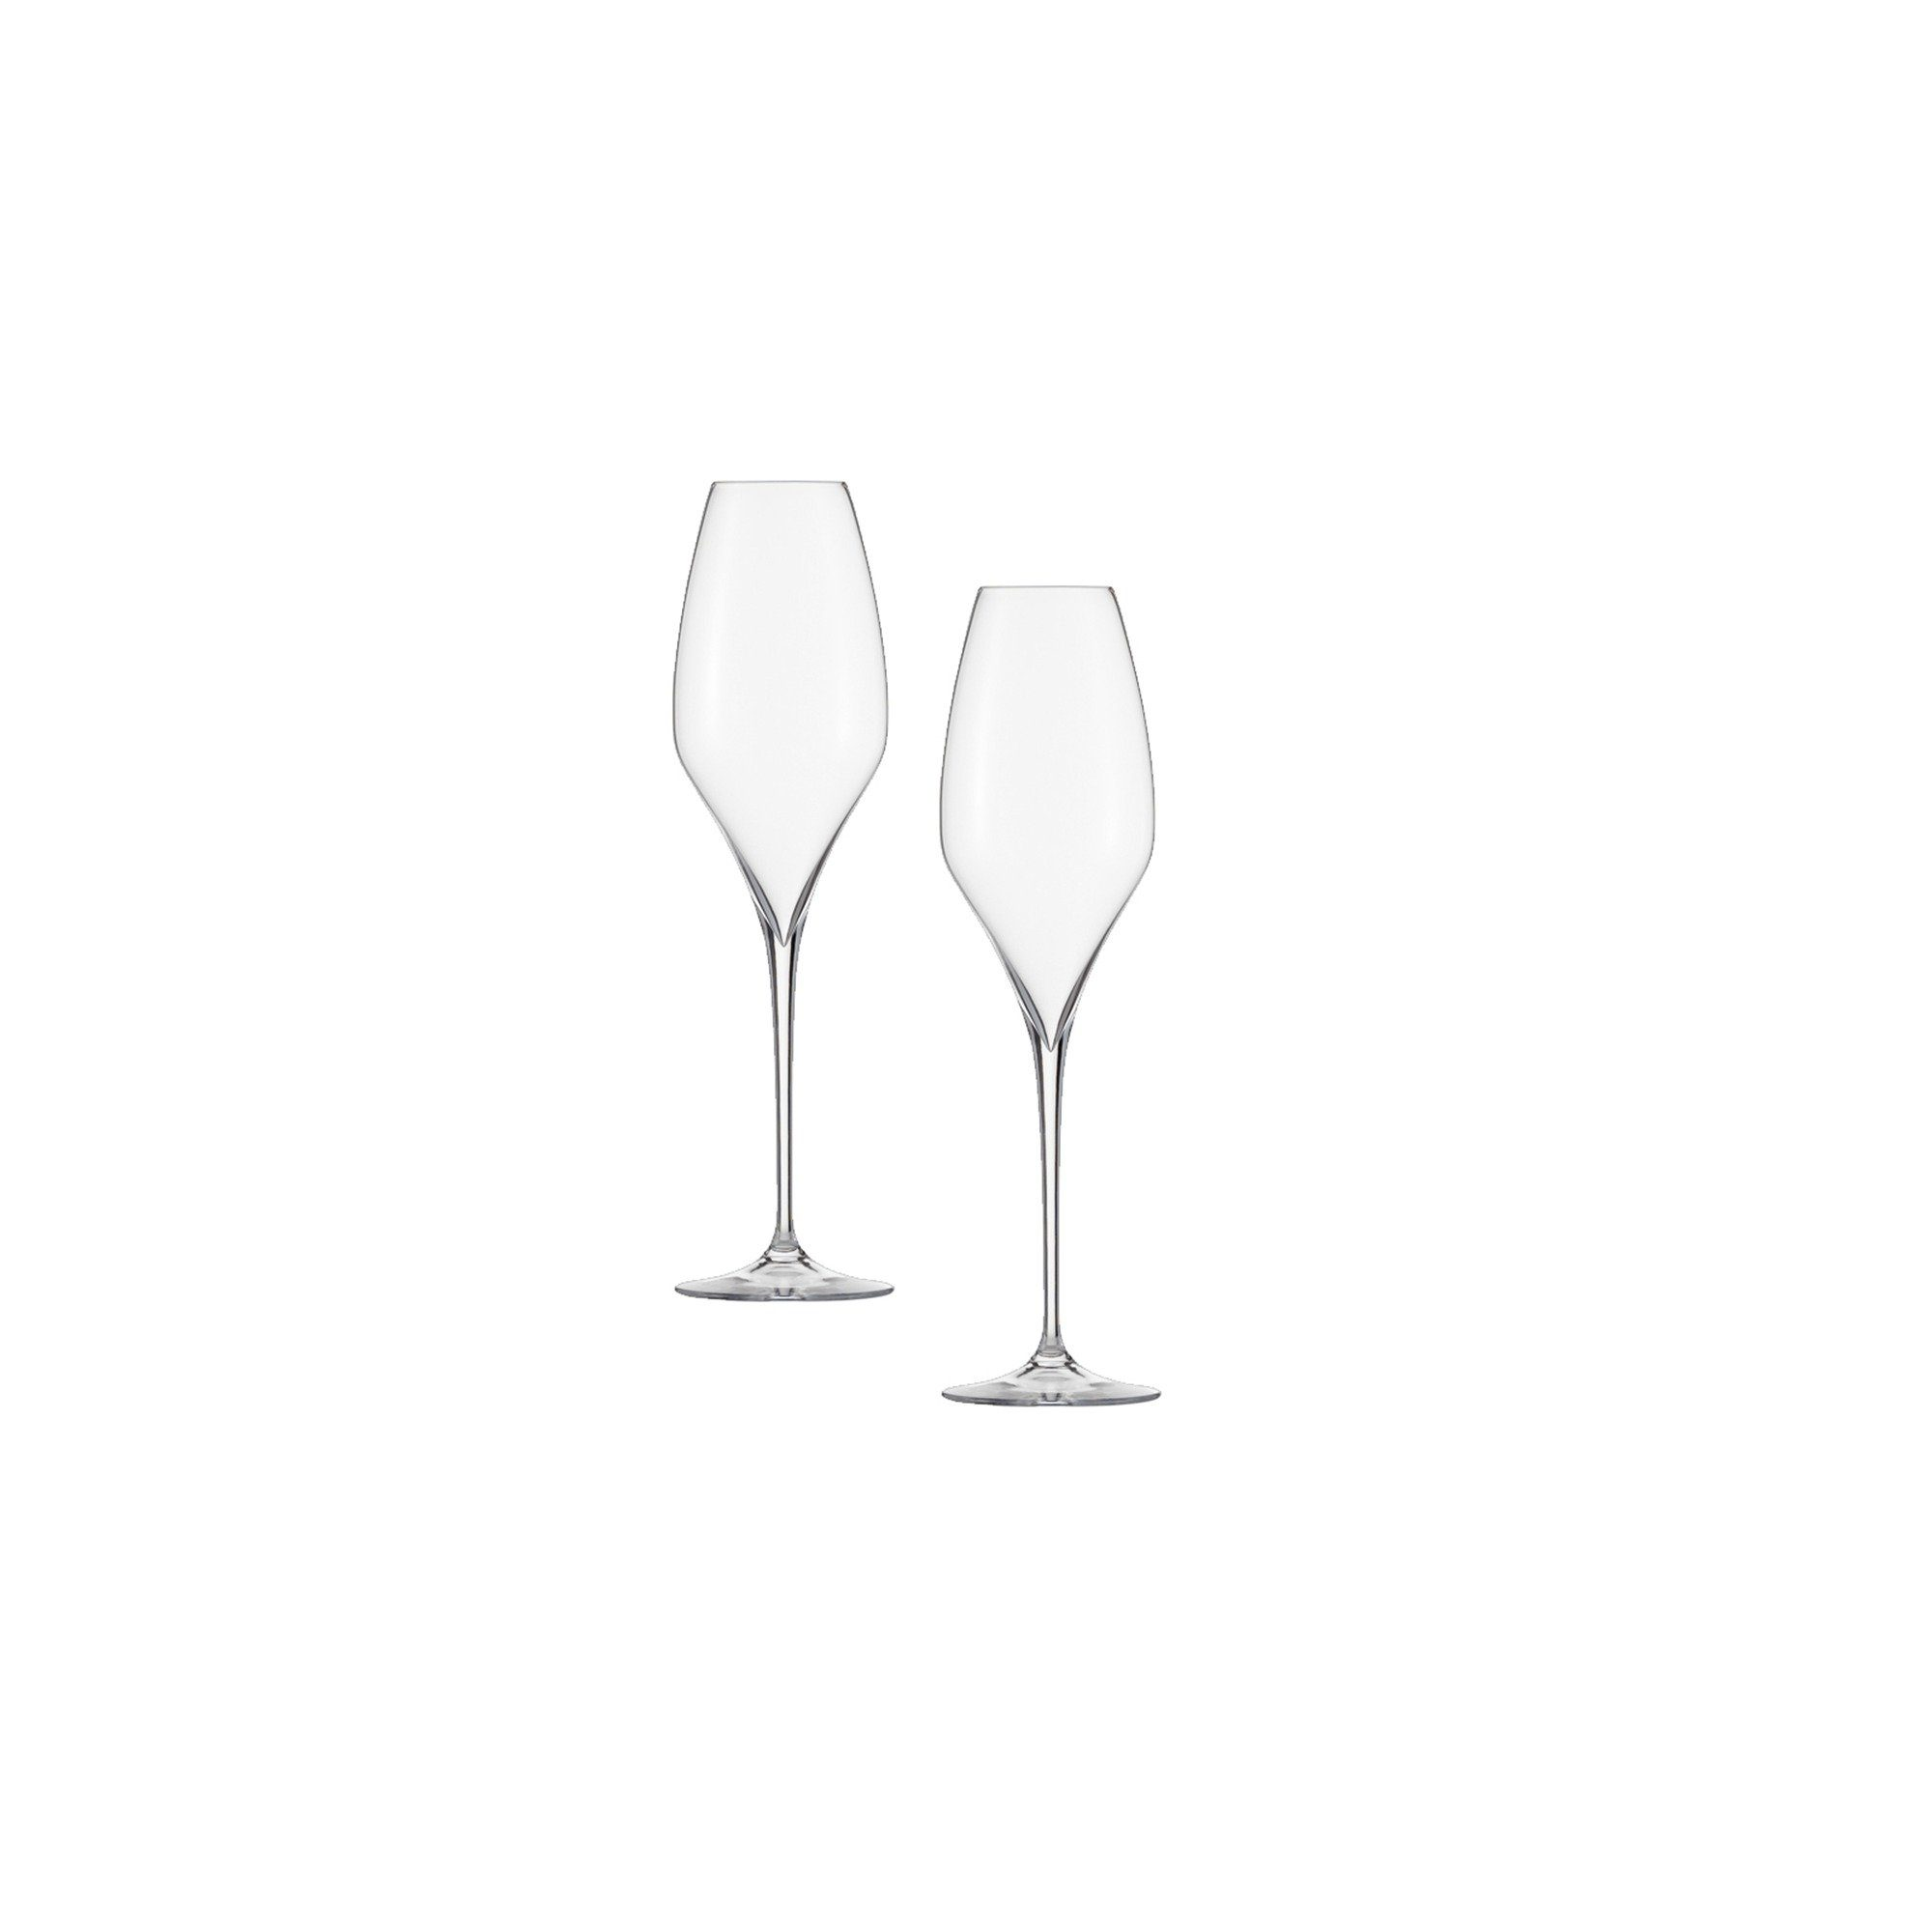 Zwiesel 1872 Champagner Glas 2er-Set »The First«